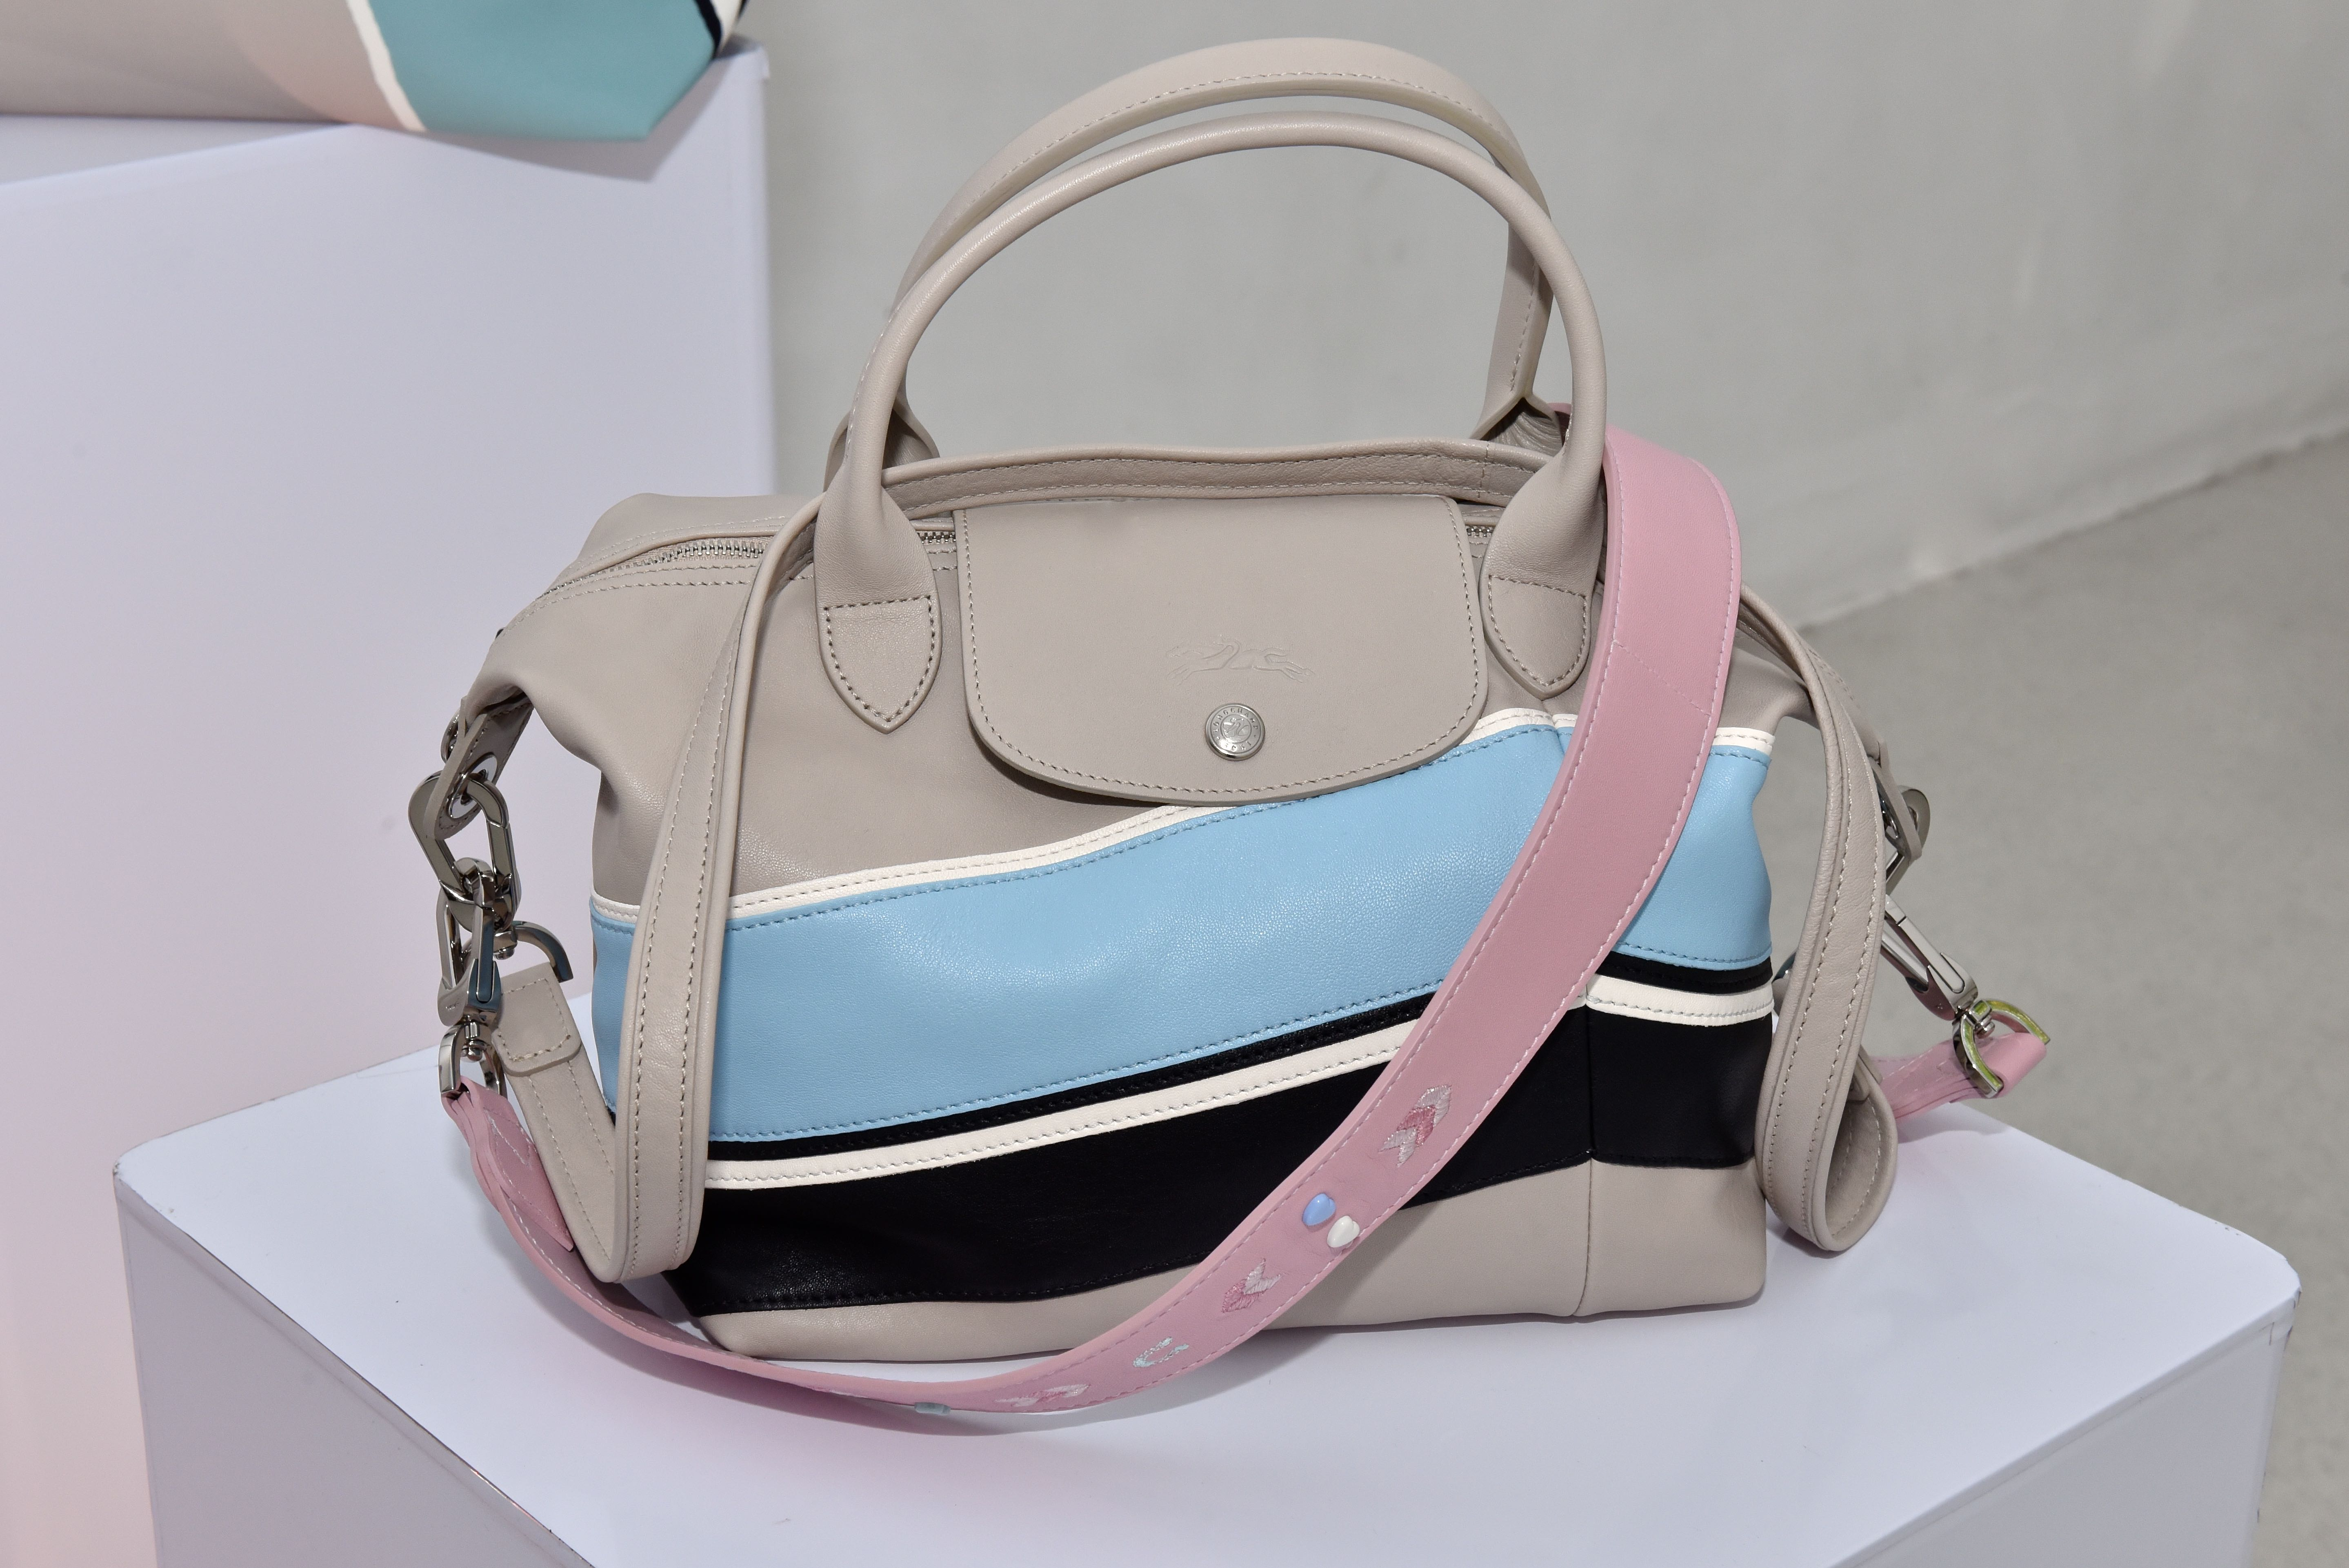 CLASSIC WITH A TWIST. The newest leather Le Pliage Cuir